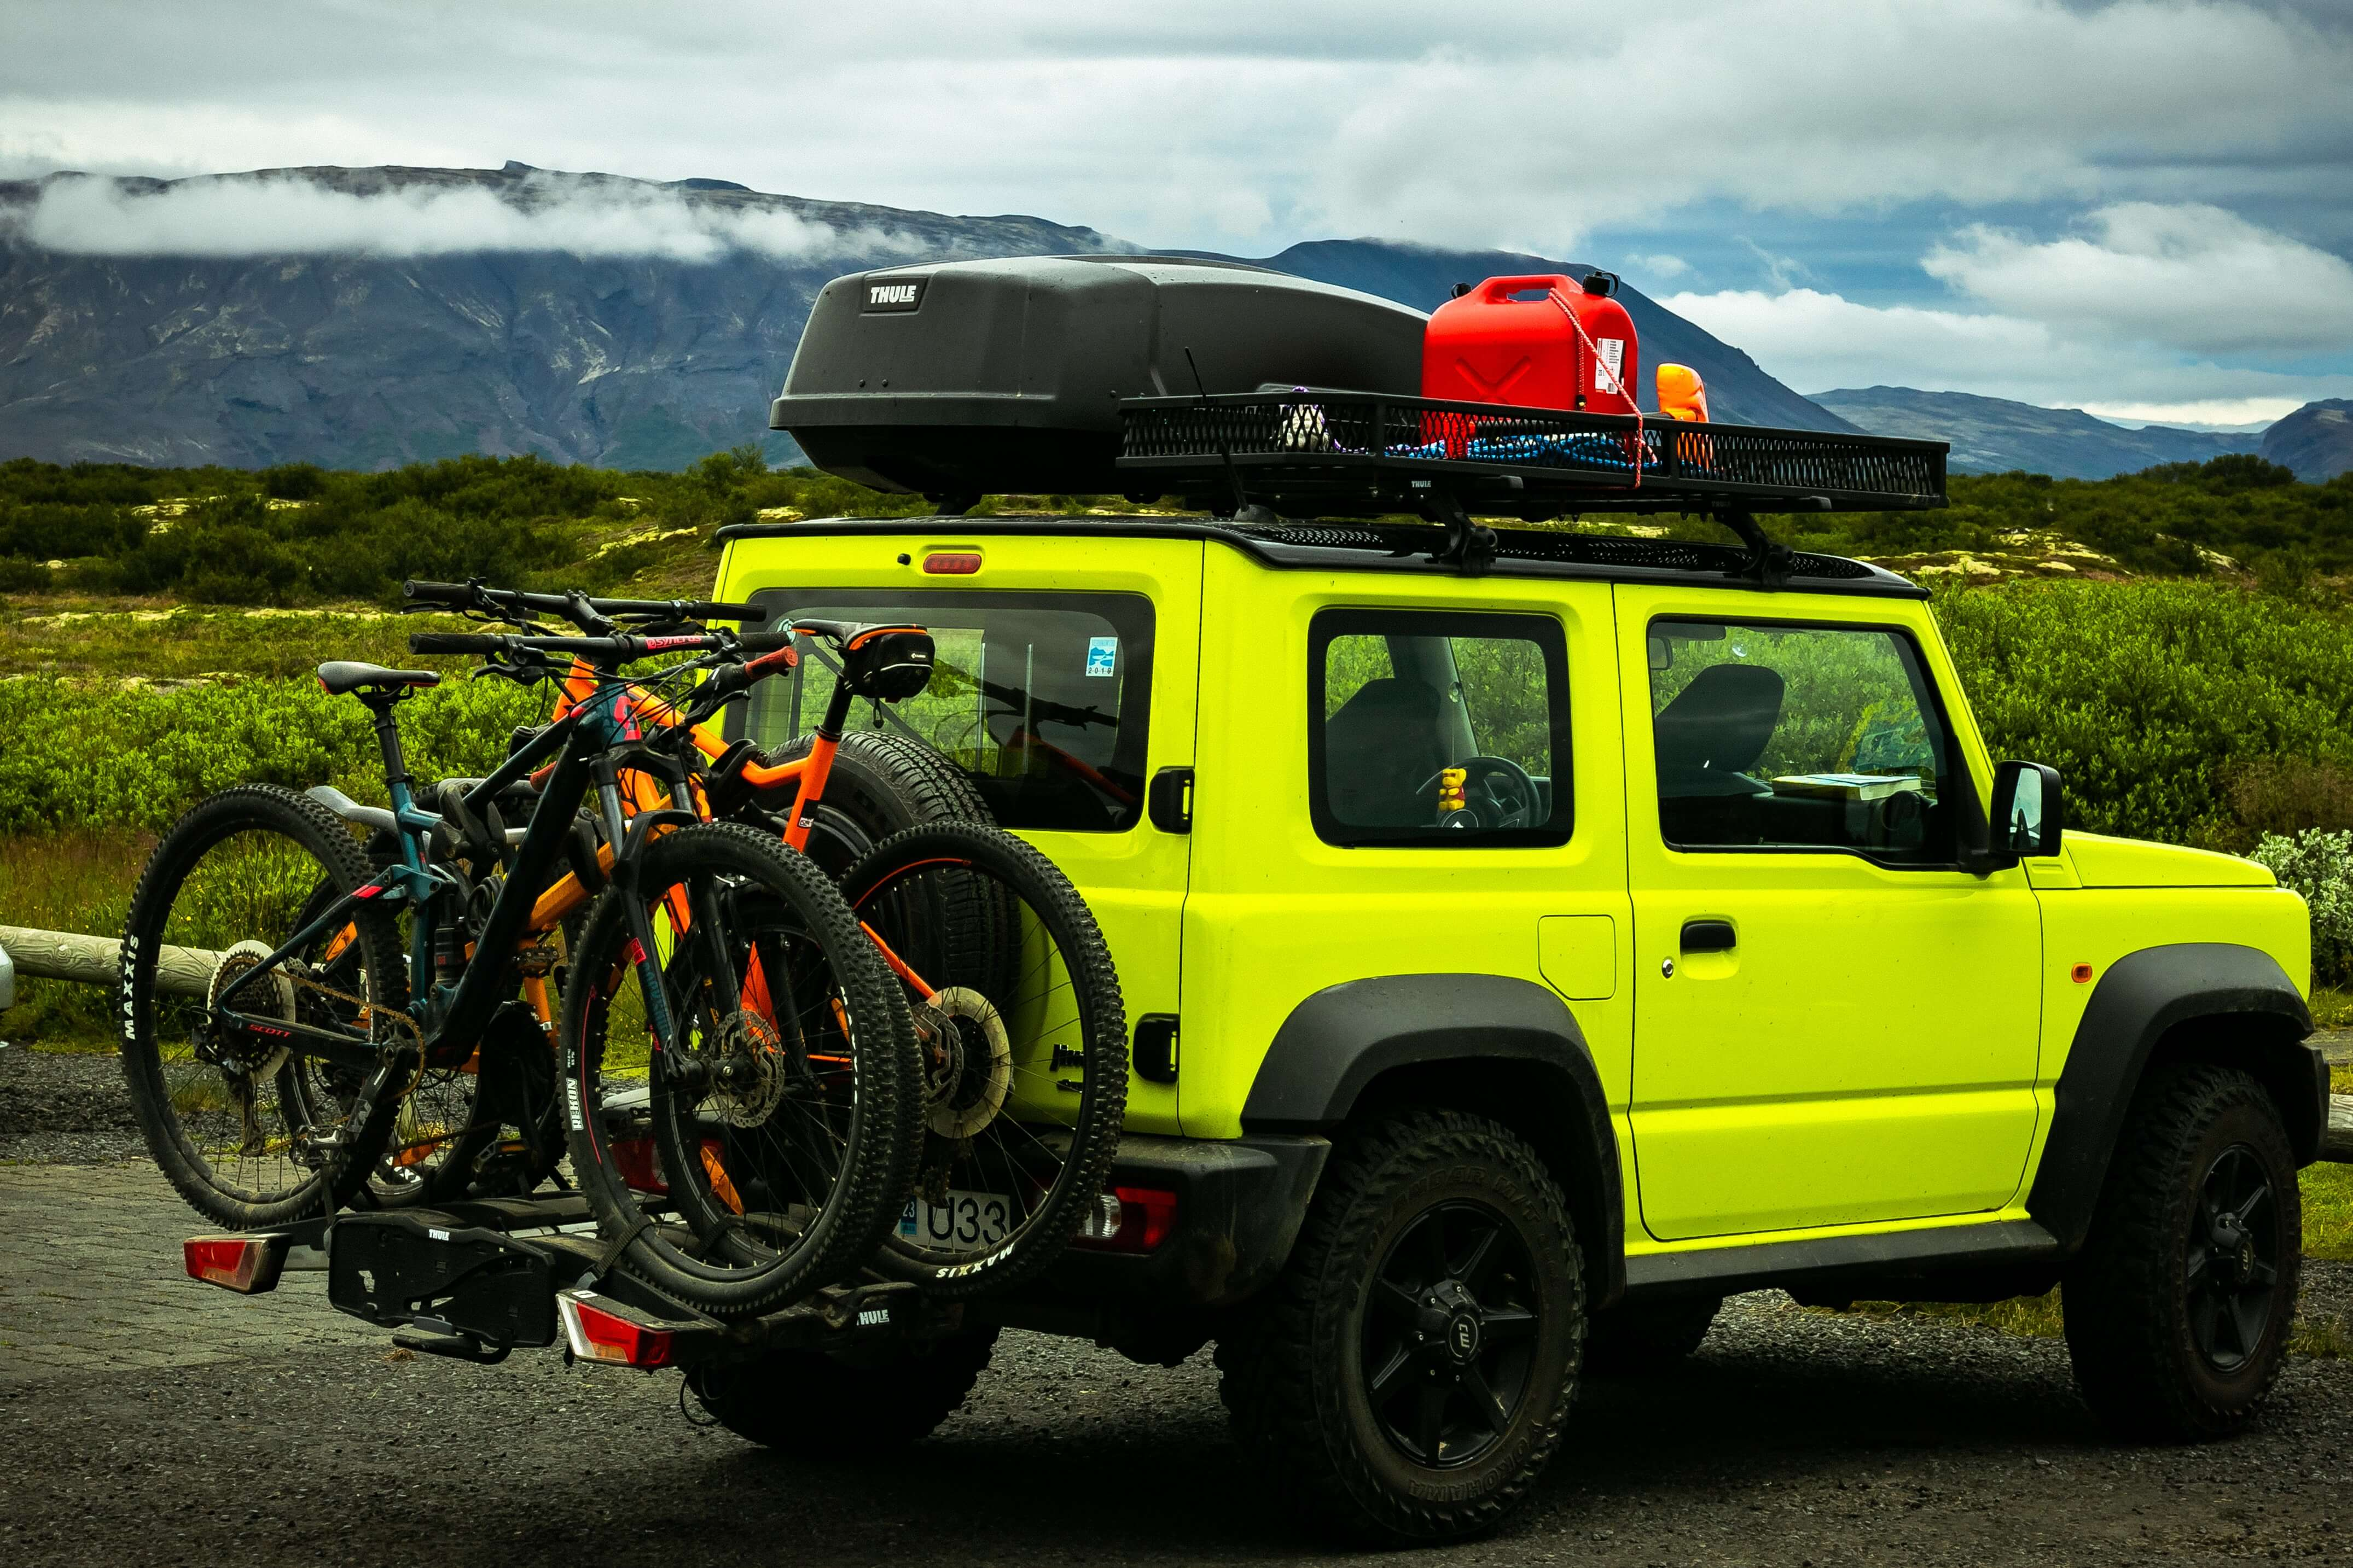 best way to carry bikes on car could be integrated bike rack